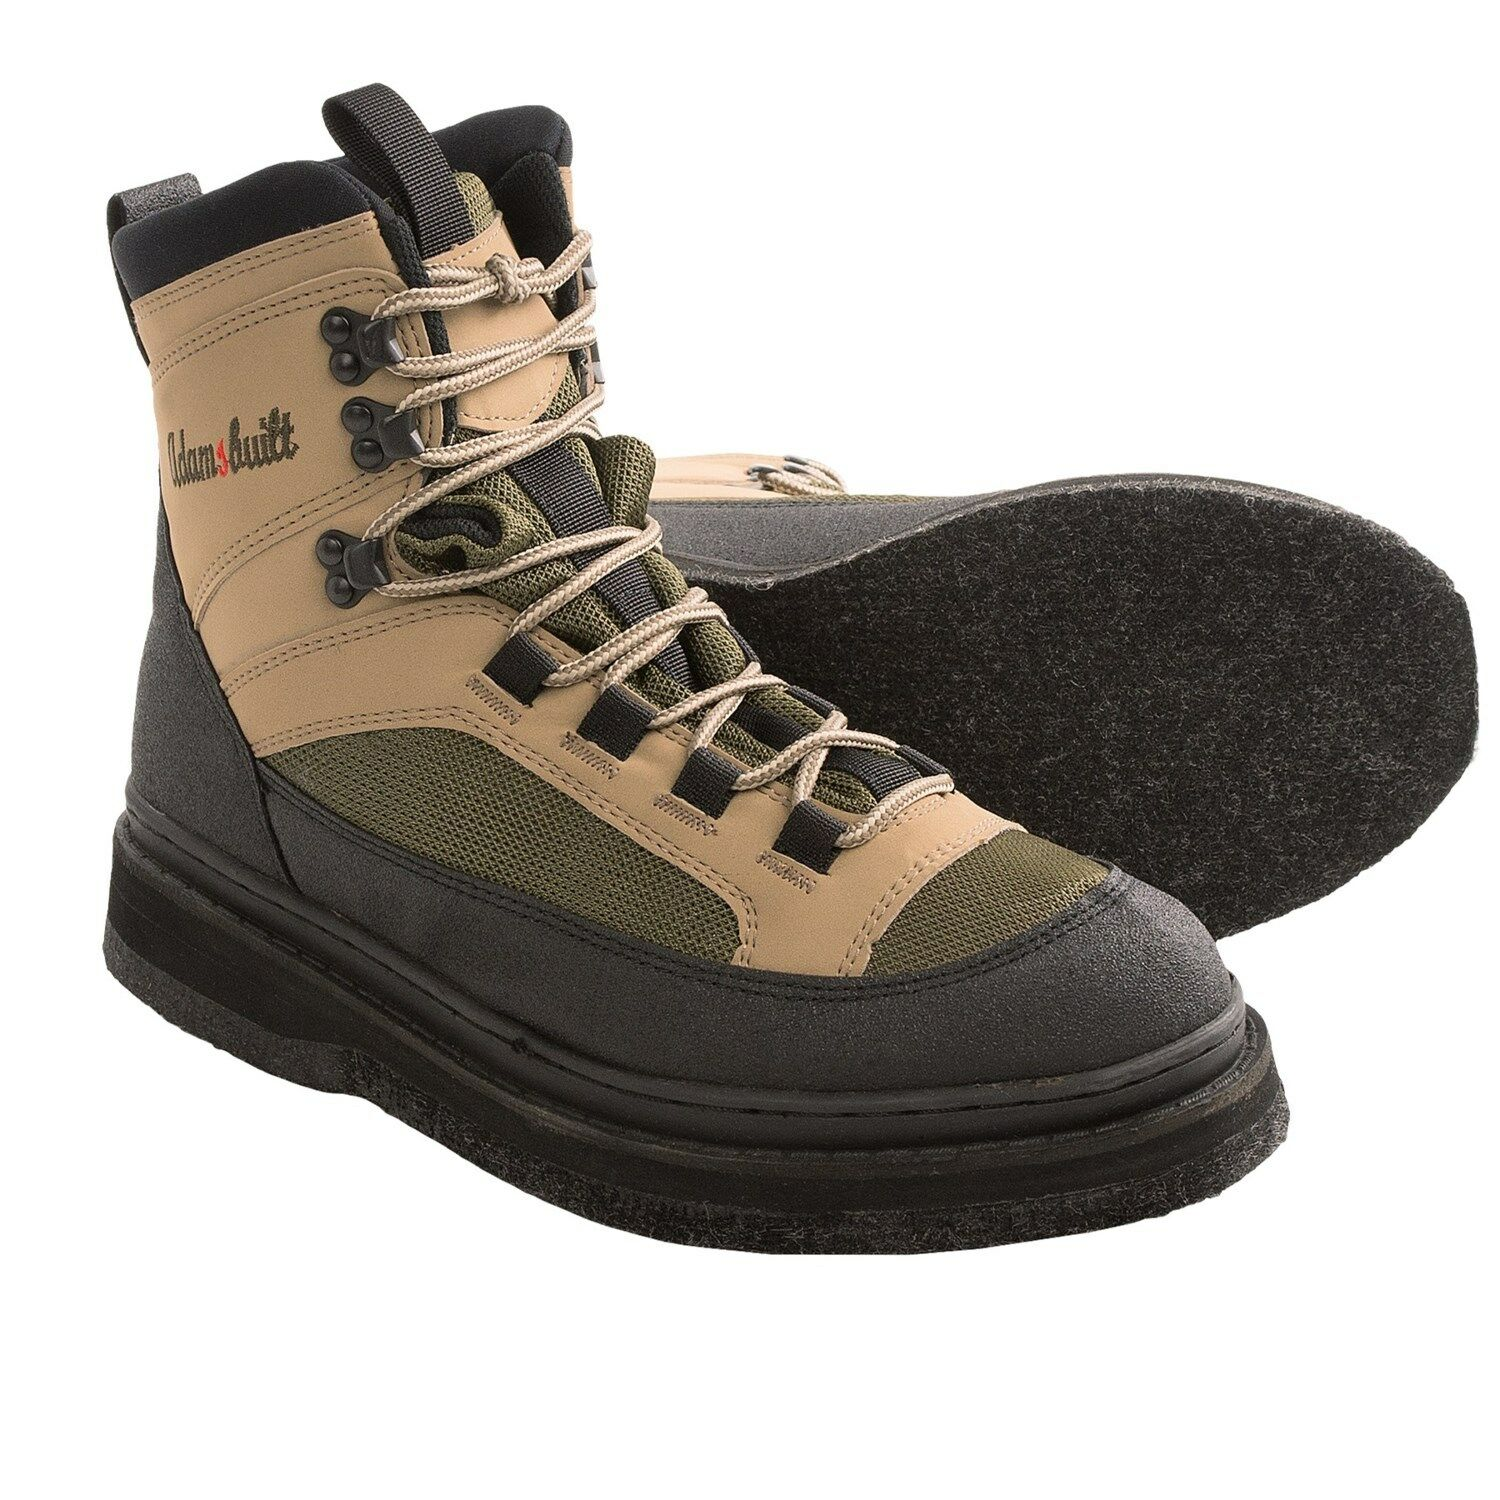 Adamsbuilt Adams Built Gear Smith River Wading  Boots - Men's Sizes 13 - 14 NEW   quality product